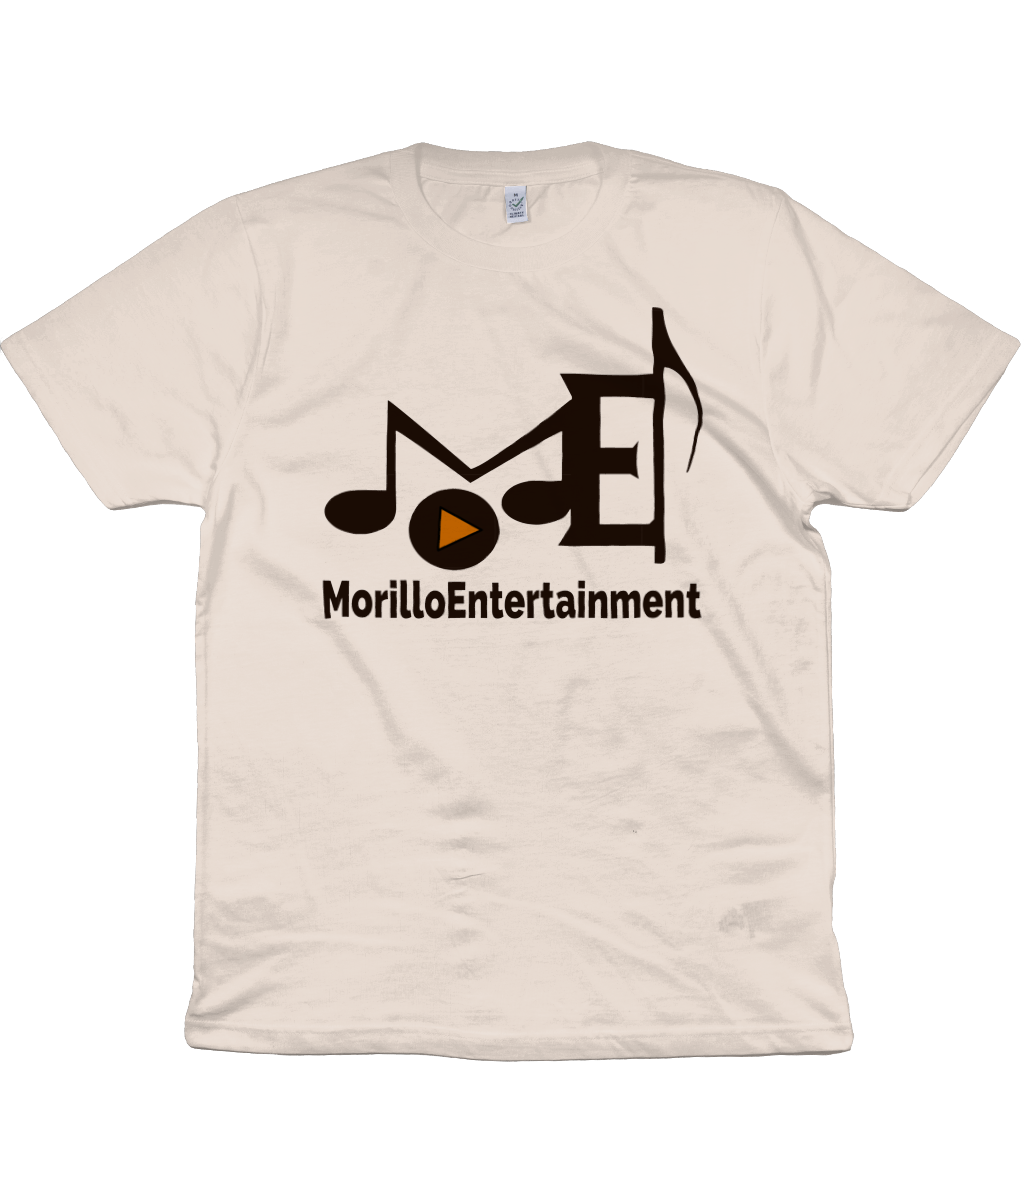 MORILLO ENT LOGO T-SHIRT Clothing - MORILLO ENTERPRISE